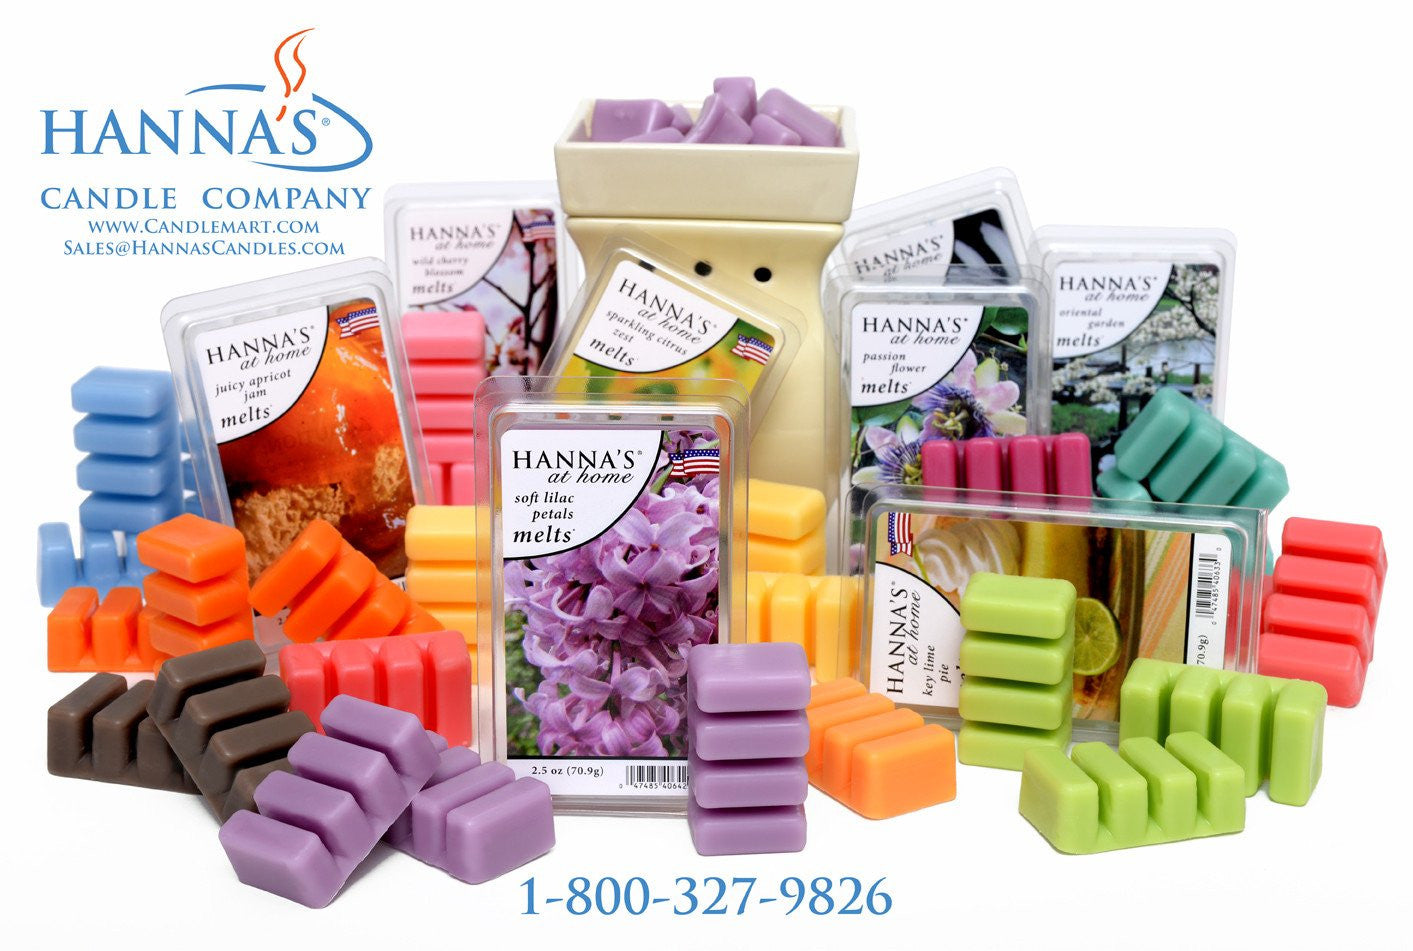 Juicy Apricot Jam Scented Wax Melts - Candlemart.com